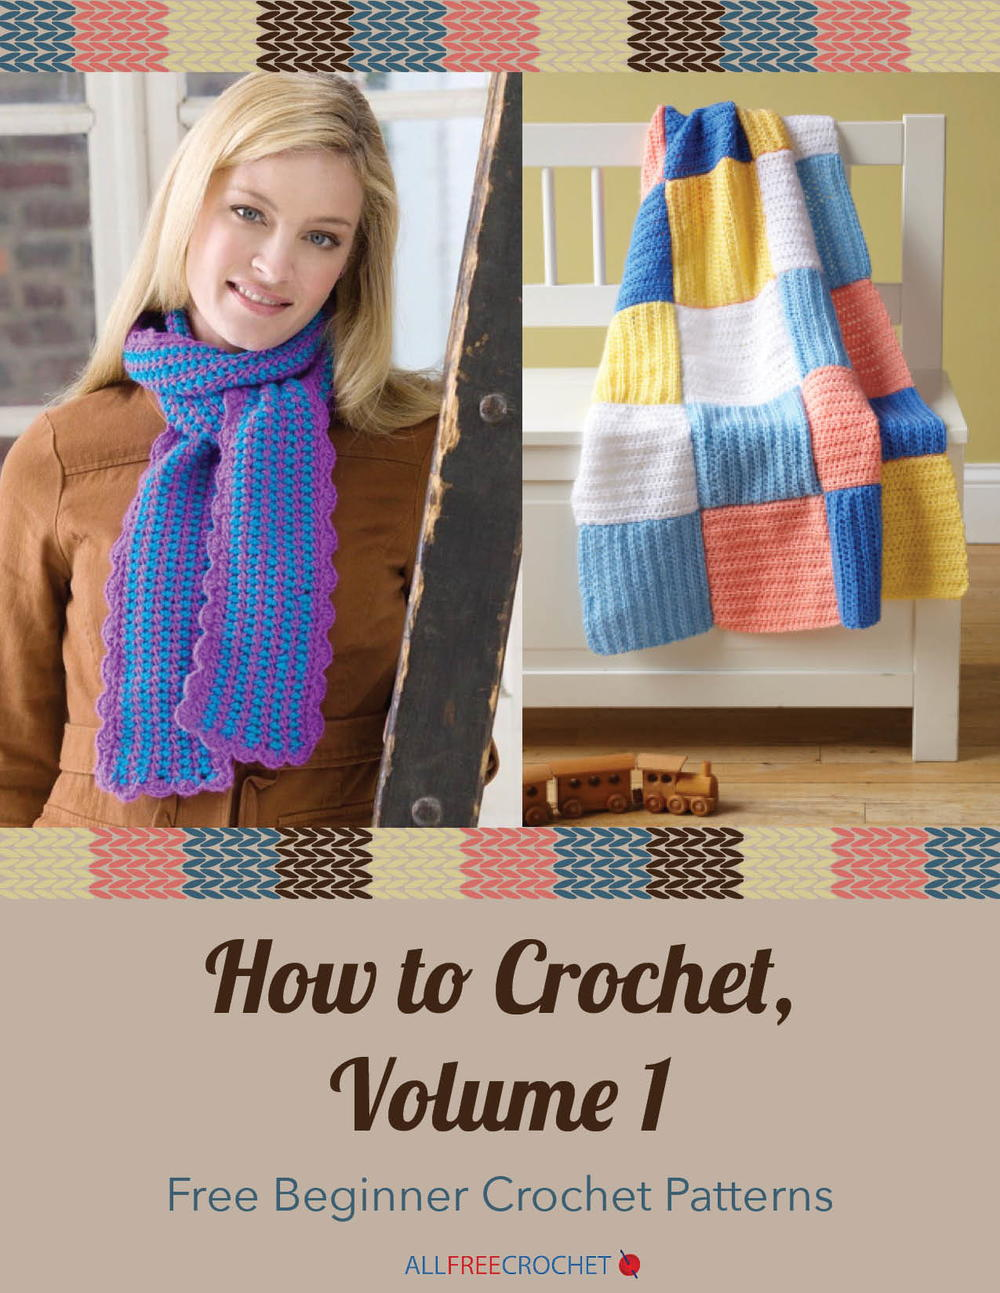 How to read crochet patterns allfreecrochet how to crochet volume 1 free beginner crochet patterns bankloansurffo Image collections